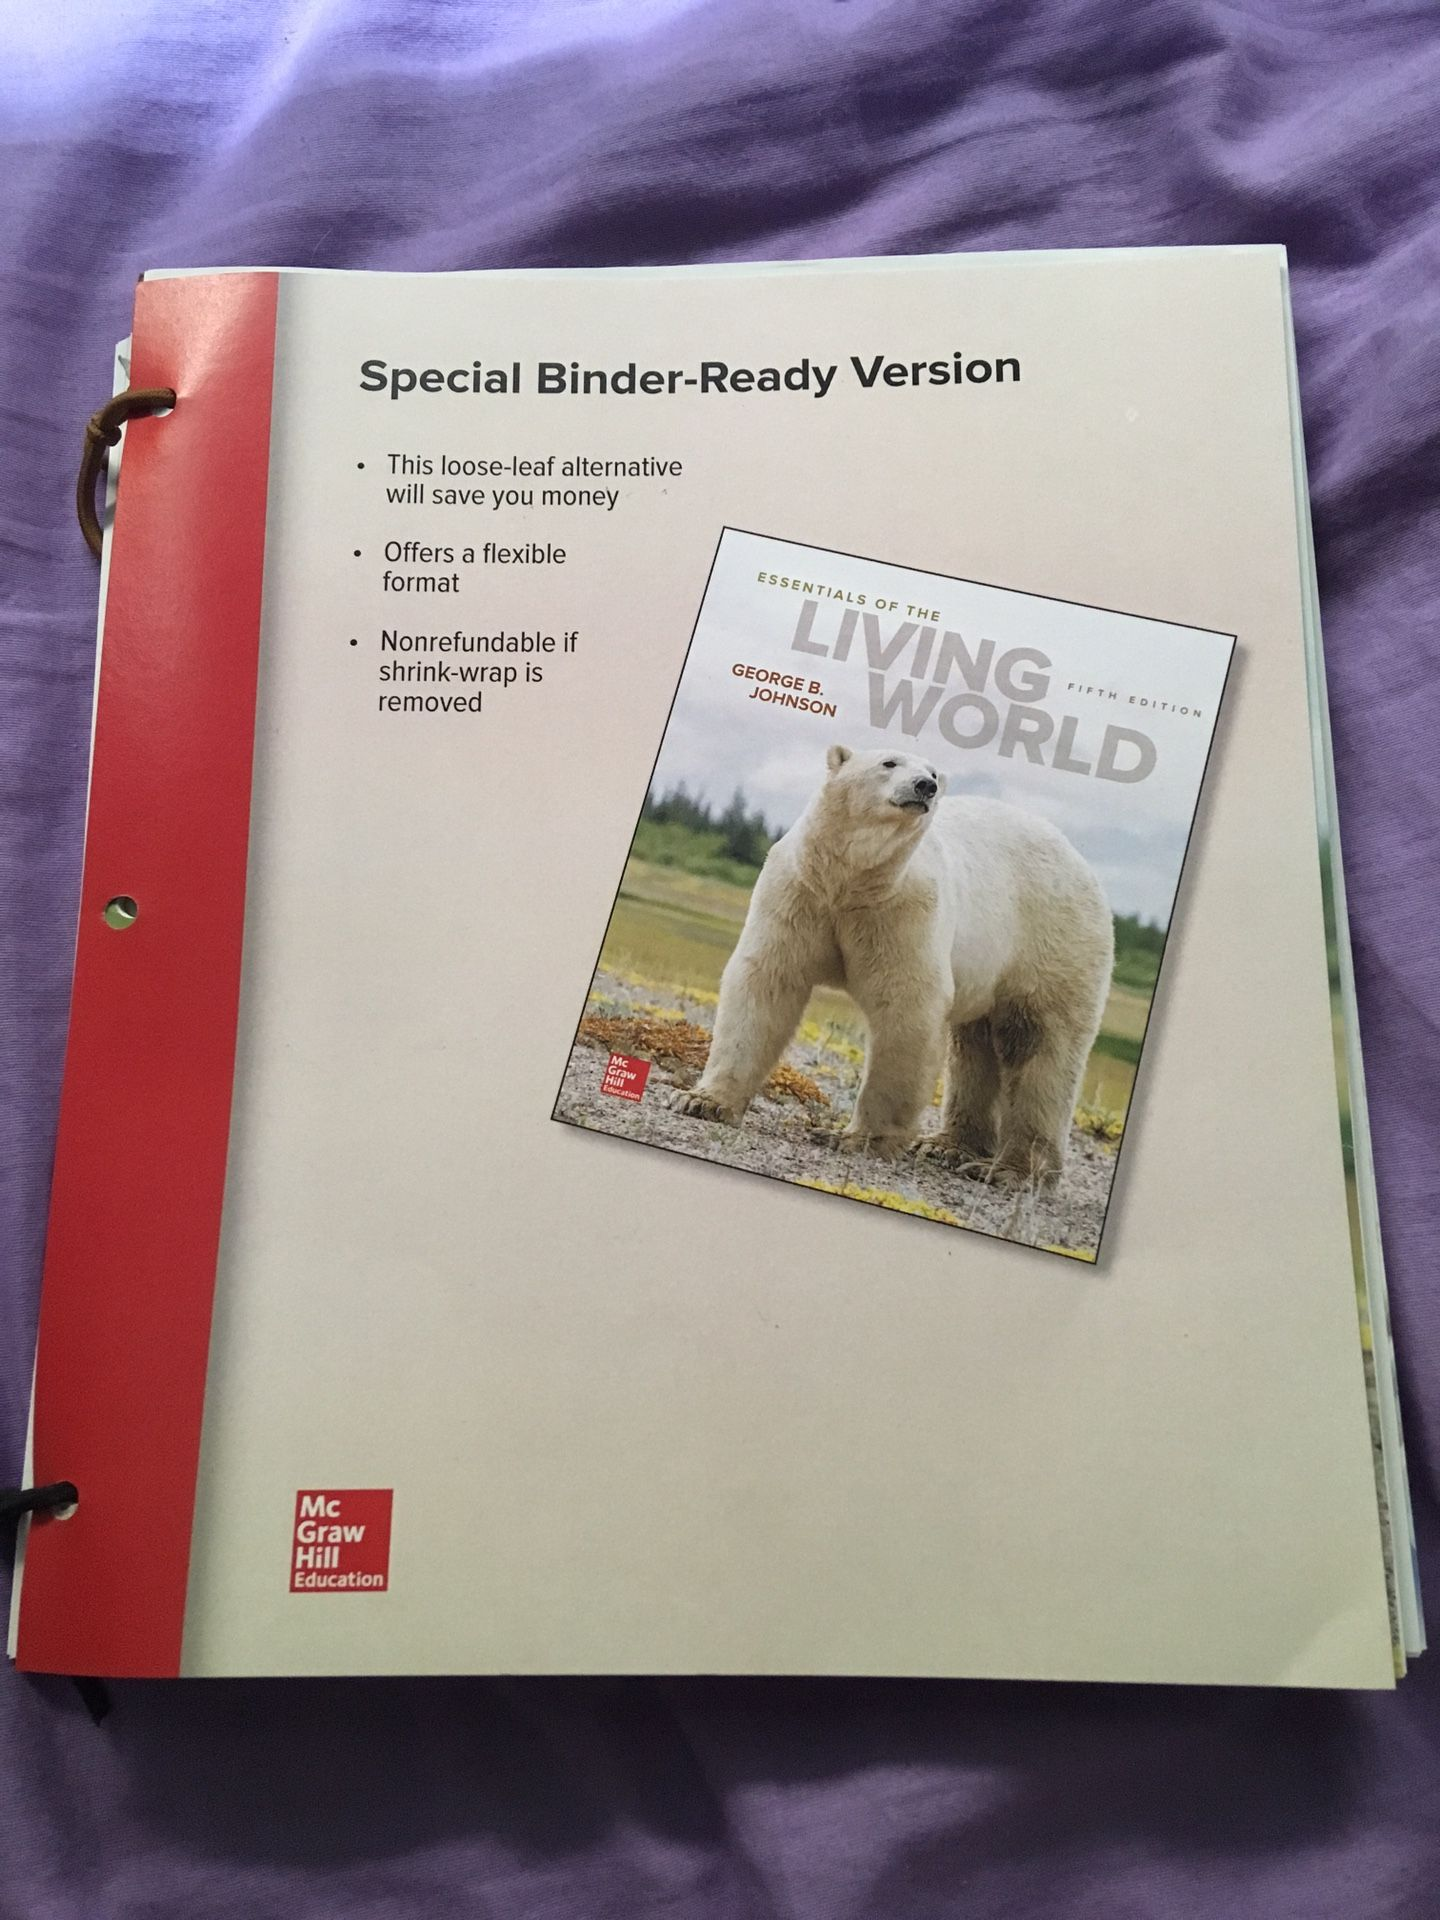 Biology 101 Textbook - Essentials of the Living World